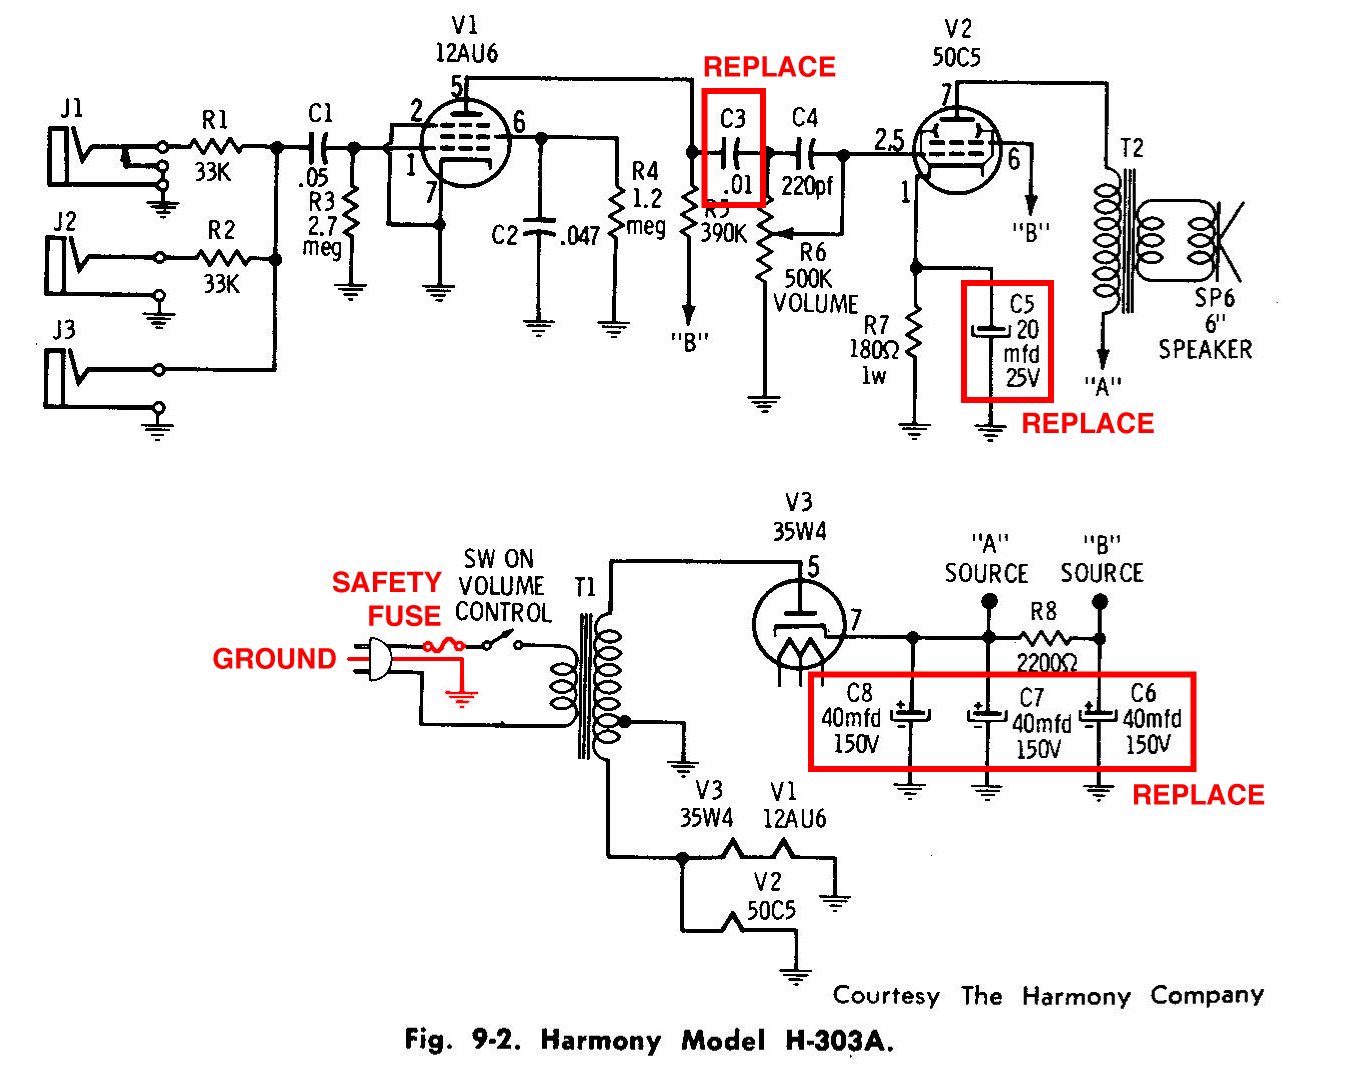 harmony h303a amplifier schematic rebuilding a vintage tube amplifier slackpropagation  at readyjetset.co